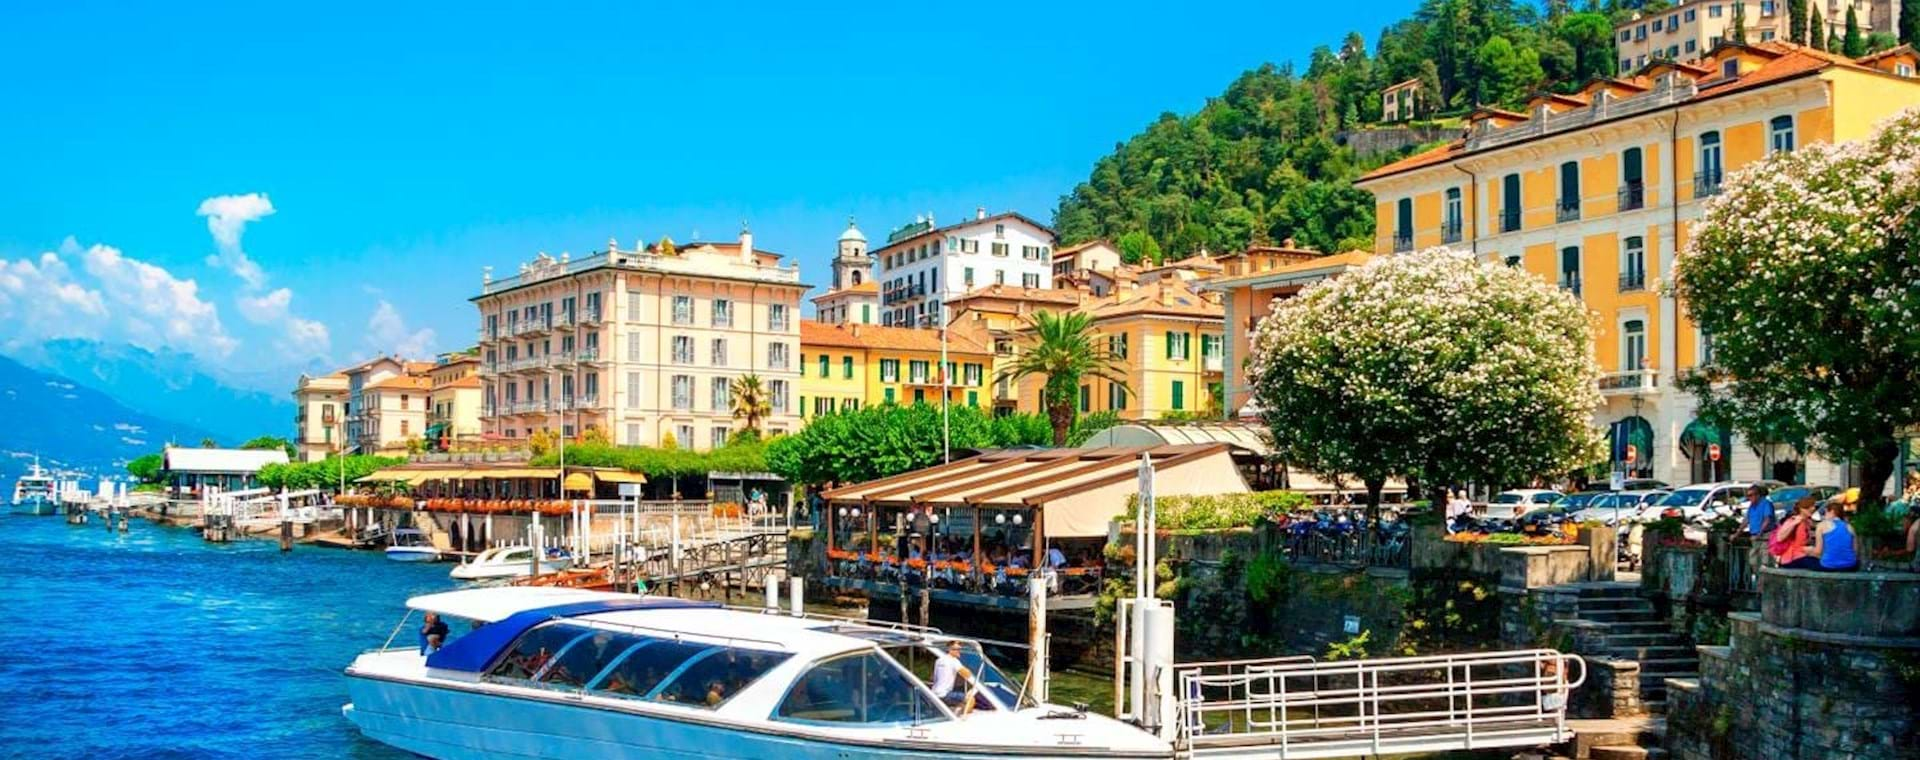 Guided Day Trip: Lake Como, Bellagio & Lugano Switzerland from Milan